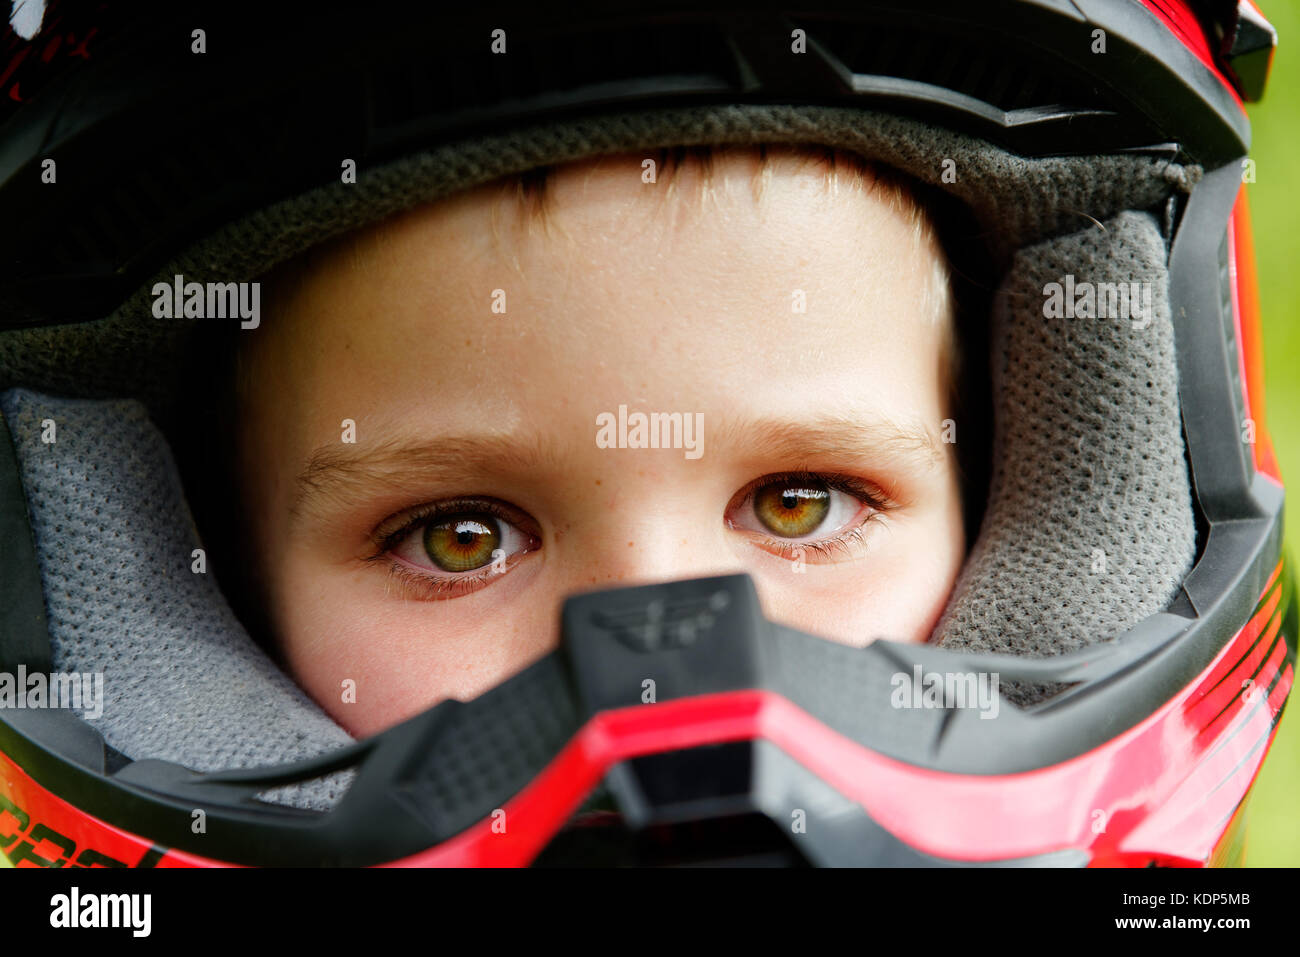 A portrait of a young boy (5 yrs old) wearing a full face cycle crash helmet - Stock Image